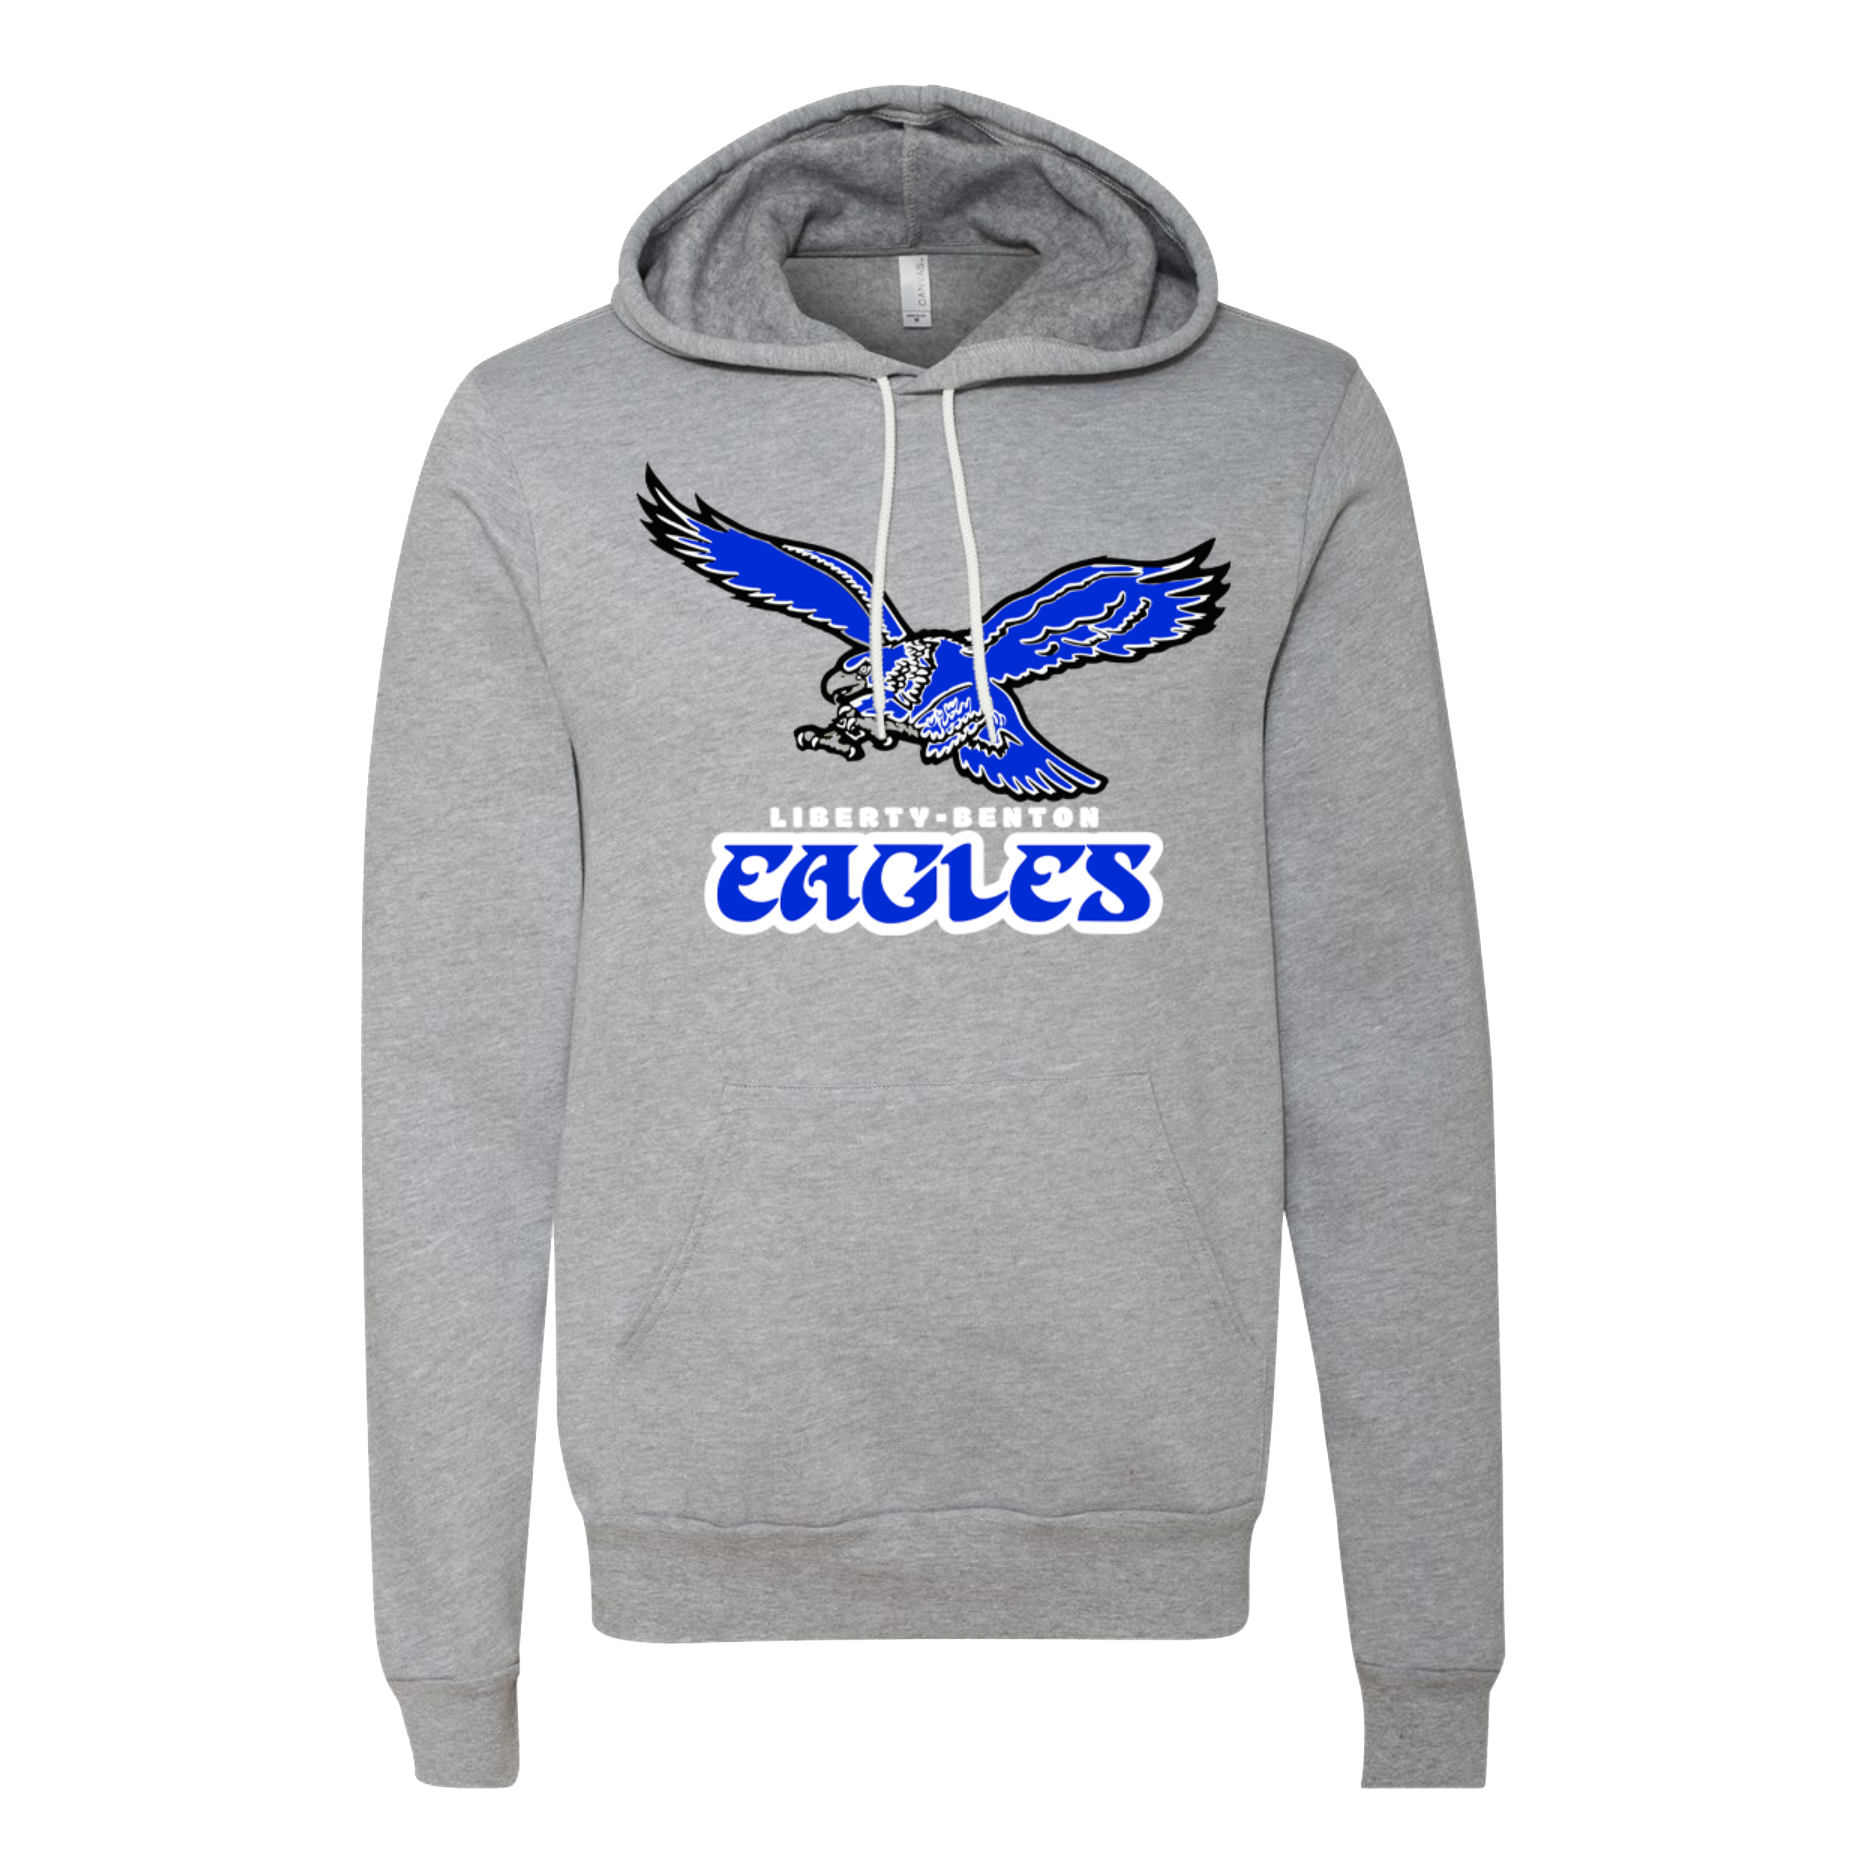 Retro Liberty-Benton Eagles Logo Hoodie